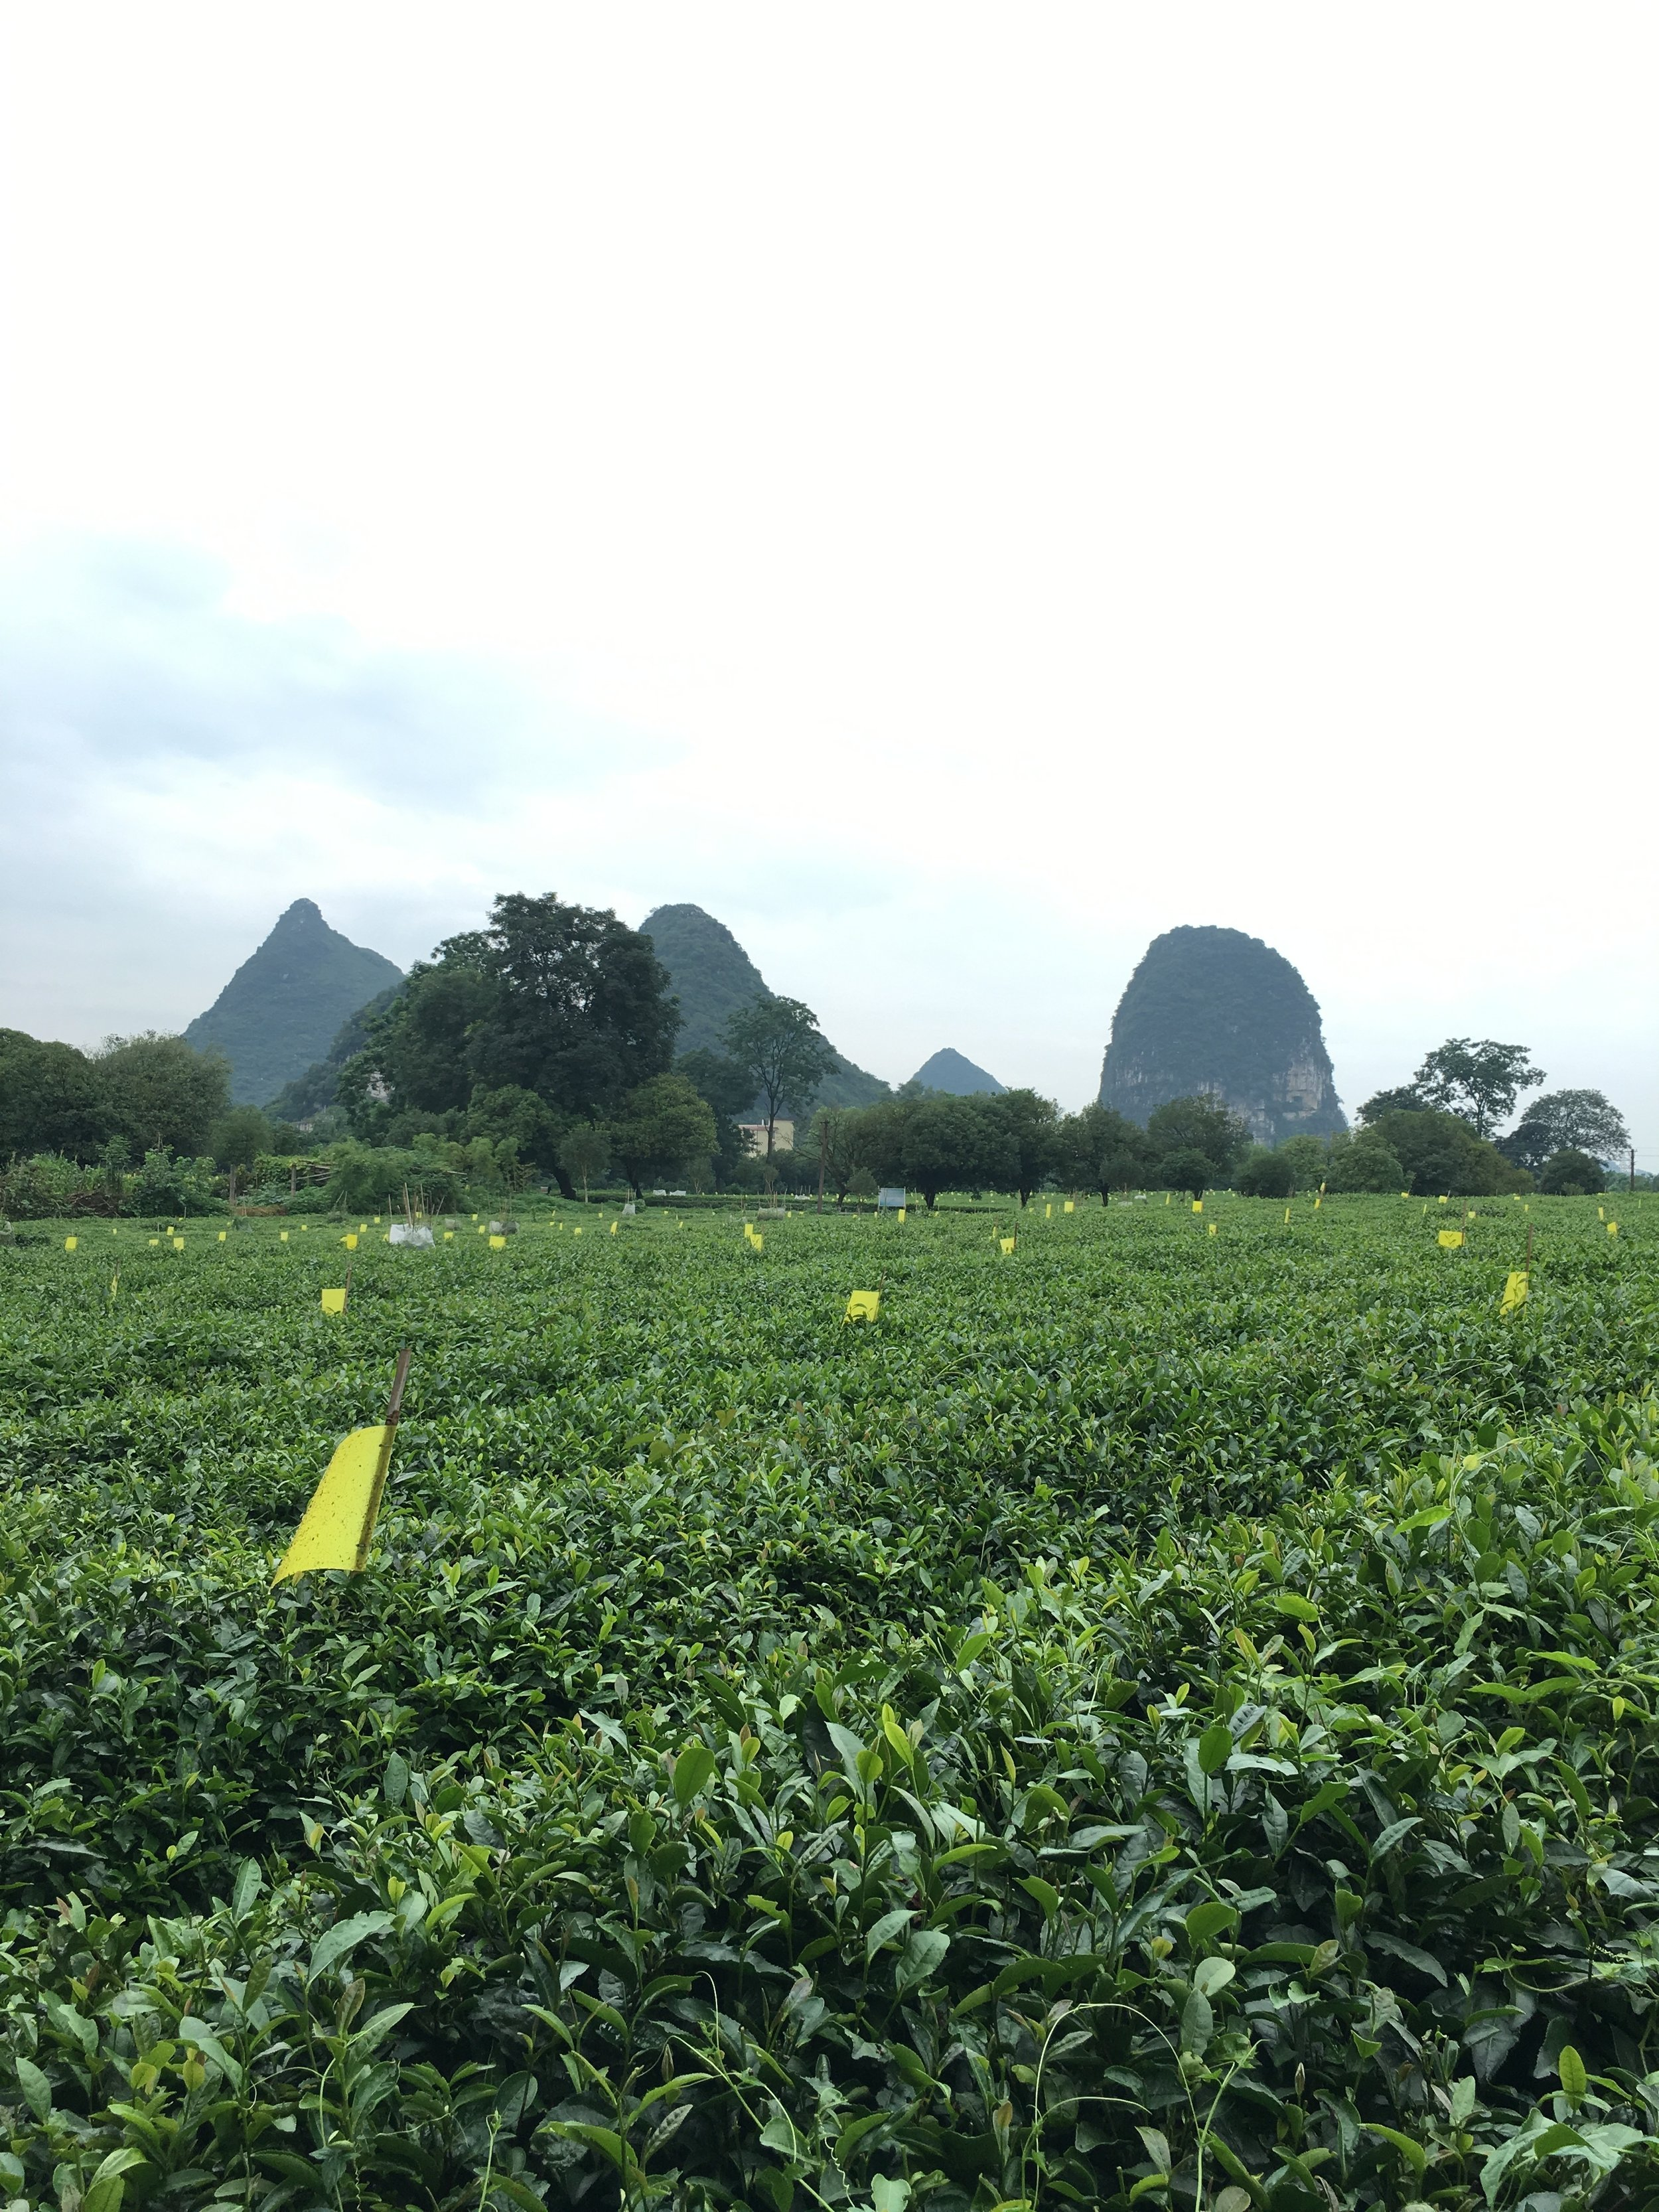 Guilin - Guilin Tea Research Institute, the only organic tea farm in the Guanxi Province. Majestic limestone mountains in the background.